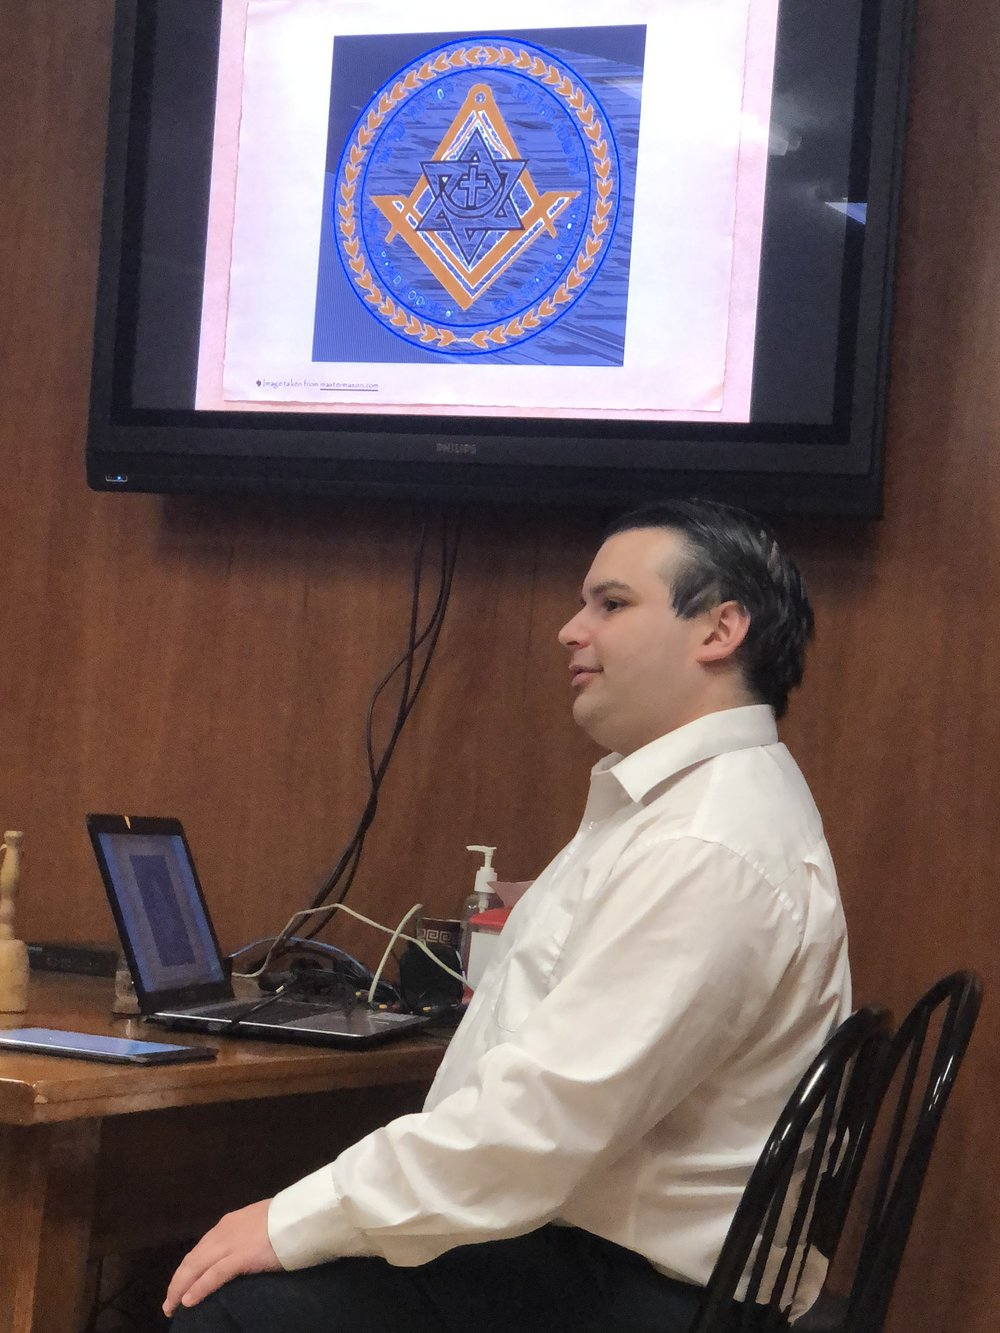 Bro. Nelson discusses the seal of the Grand Lodge of the State of Israel